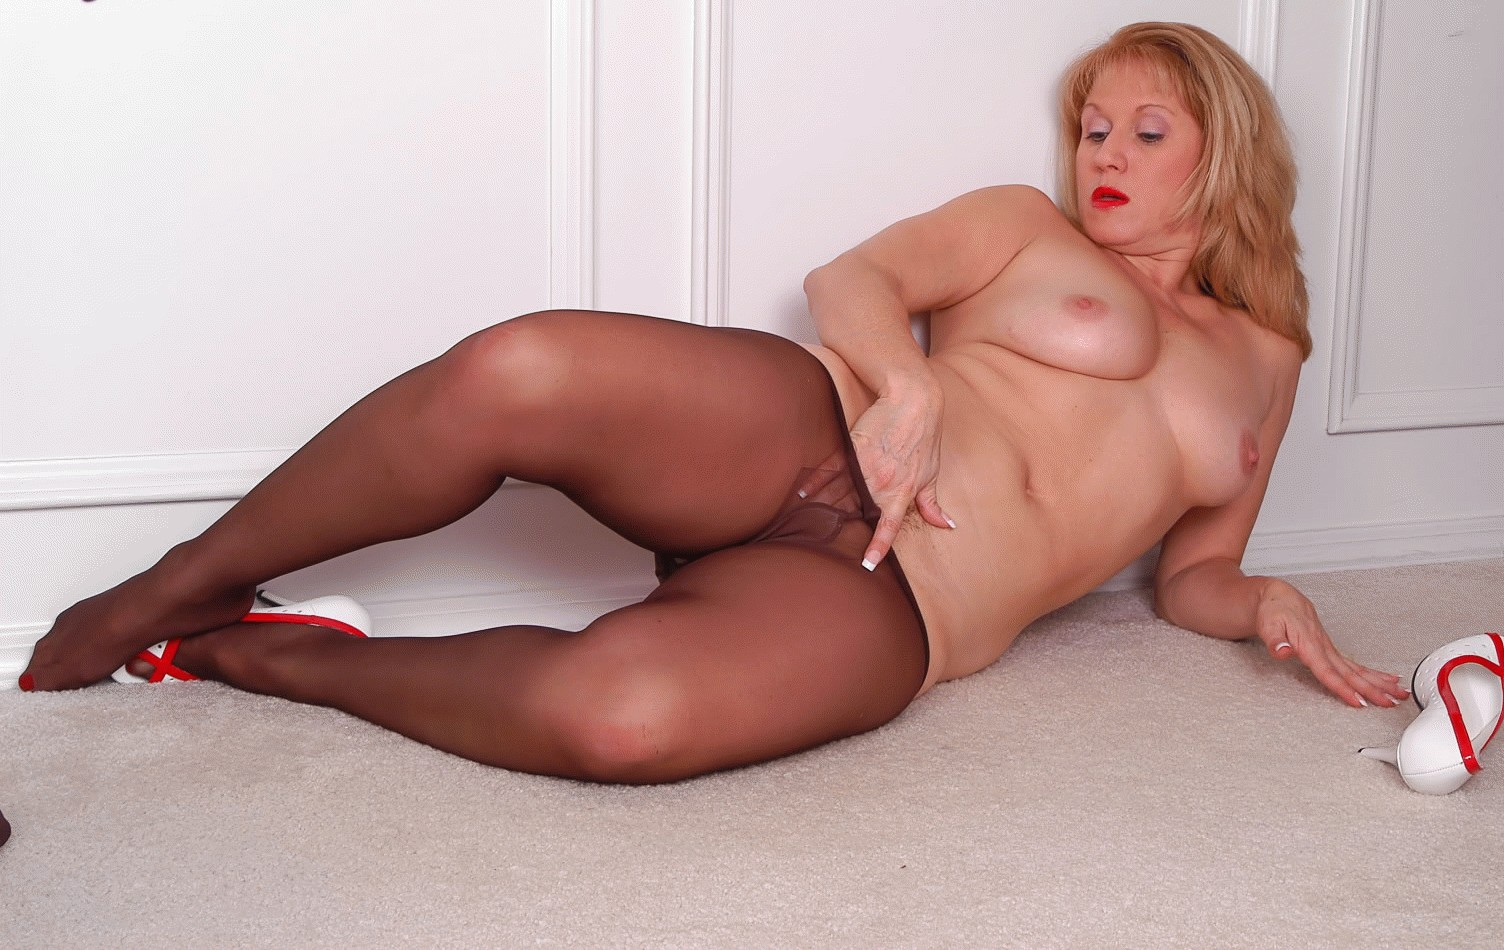 Nothing tell mature granny pornostar stocking theme simply